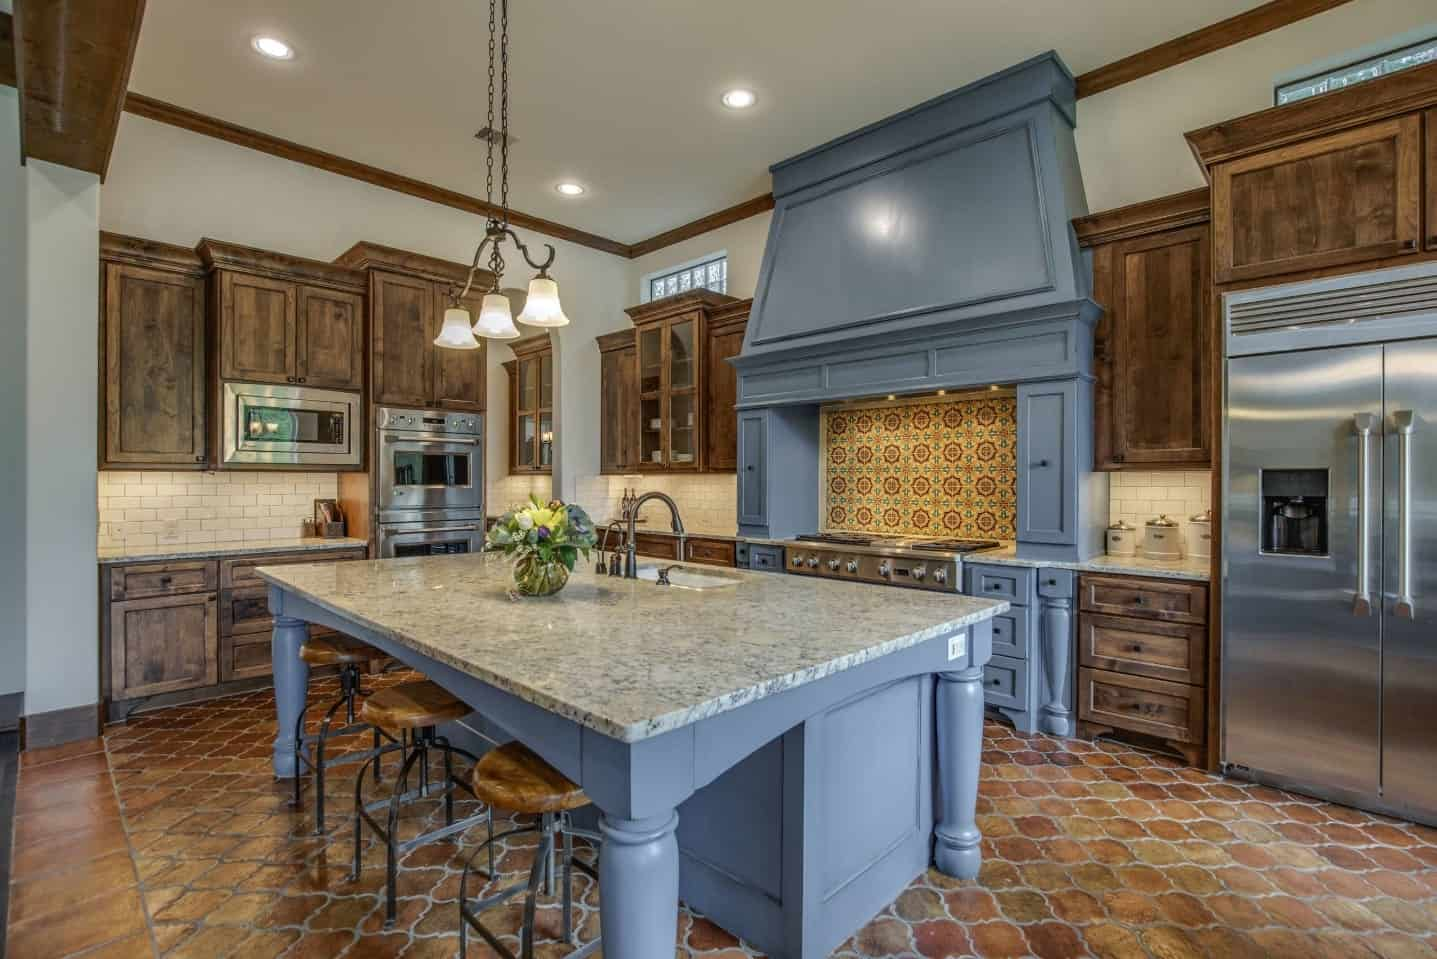 The delightful light blue palette of the wooden kitchen island has a stand out quality to it against the terracotta flooring and the white marble countertop. This setup is mirrored by the cooking area that has the same hue to the wooden structure housing the stove-top oven.